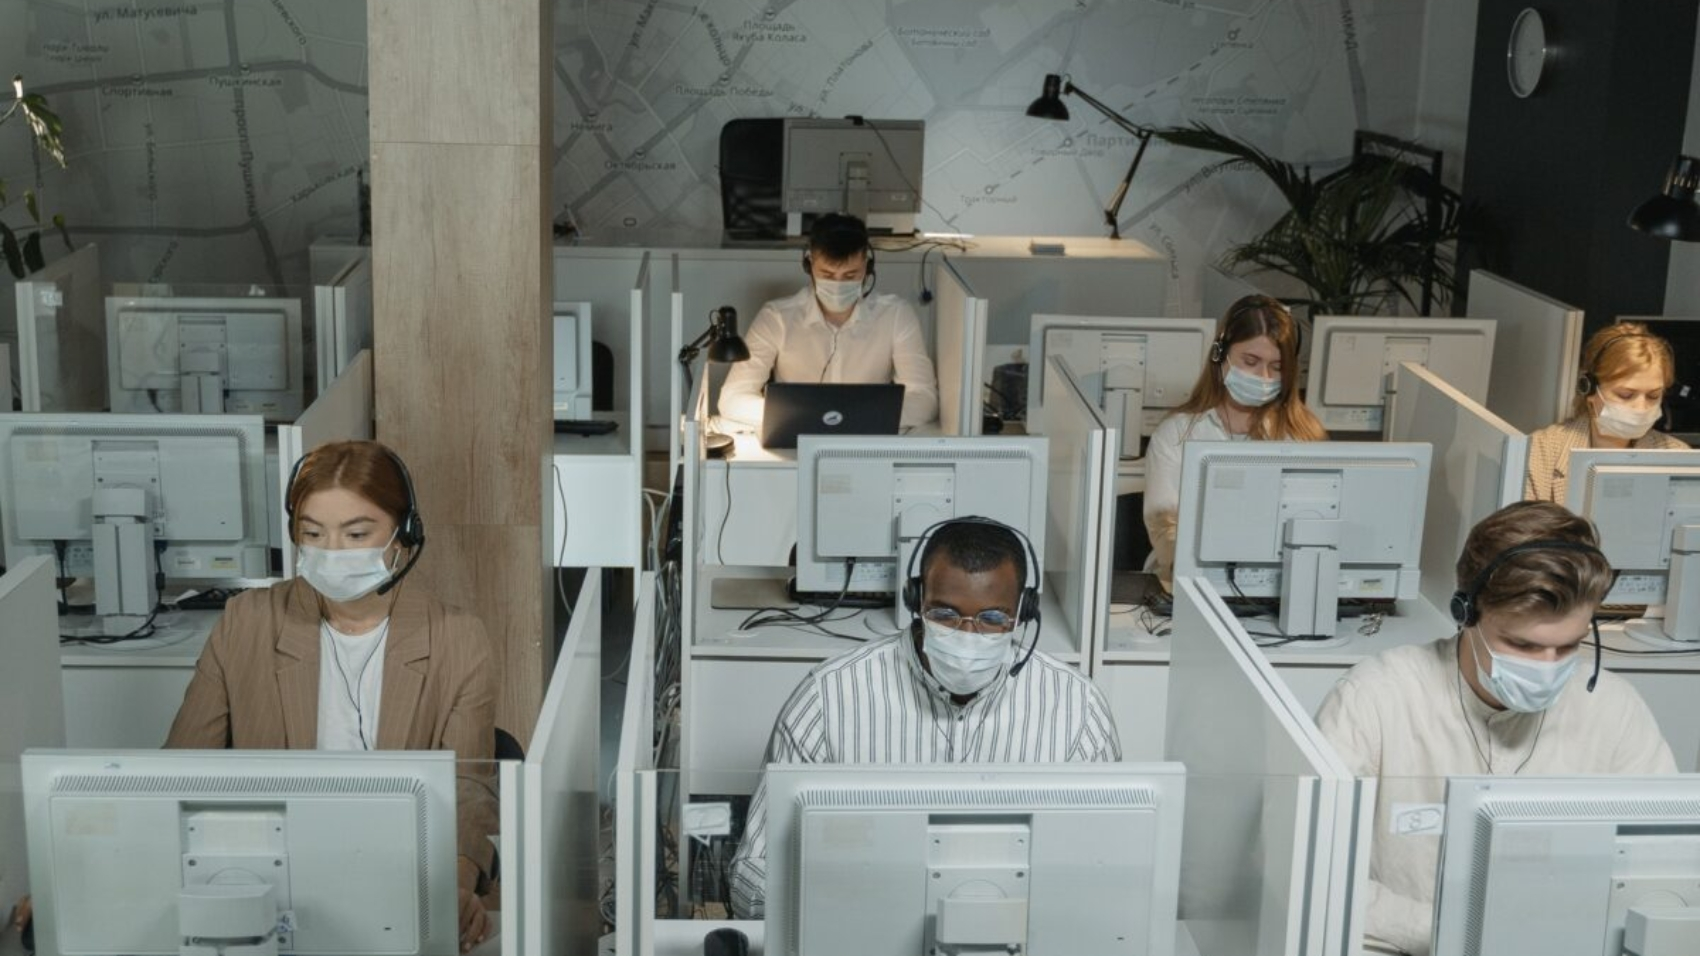 a room of a BPO company observing social safety protocols